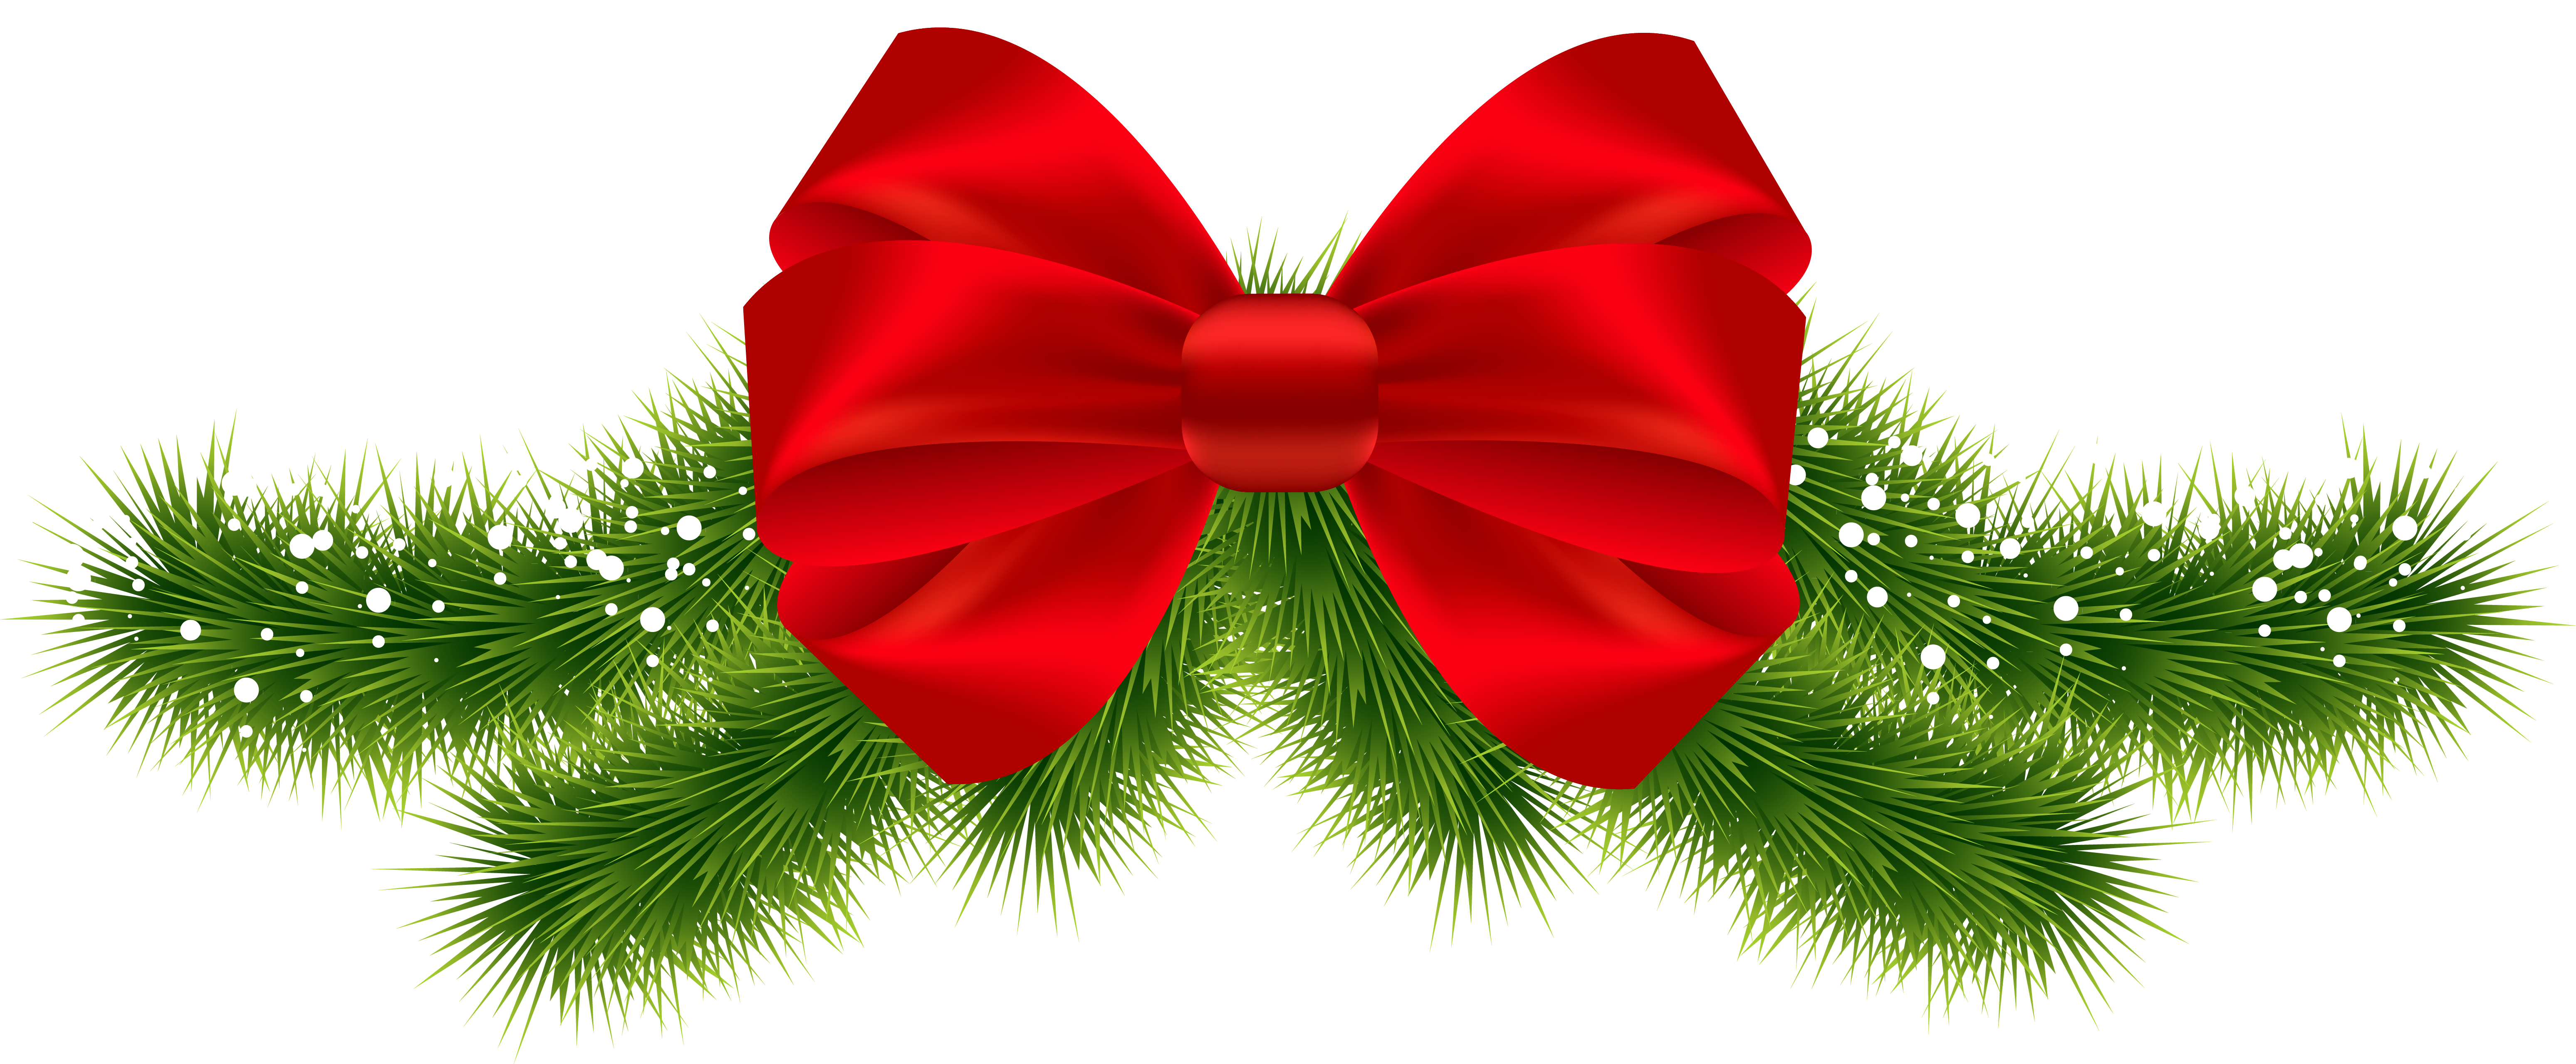 Christmas bow tie clipart banner transparent stock Christmas Red Bow PNG Clipart Image   Gallery Yopriceville - High ... banner transparent stock